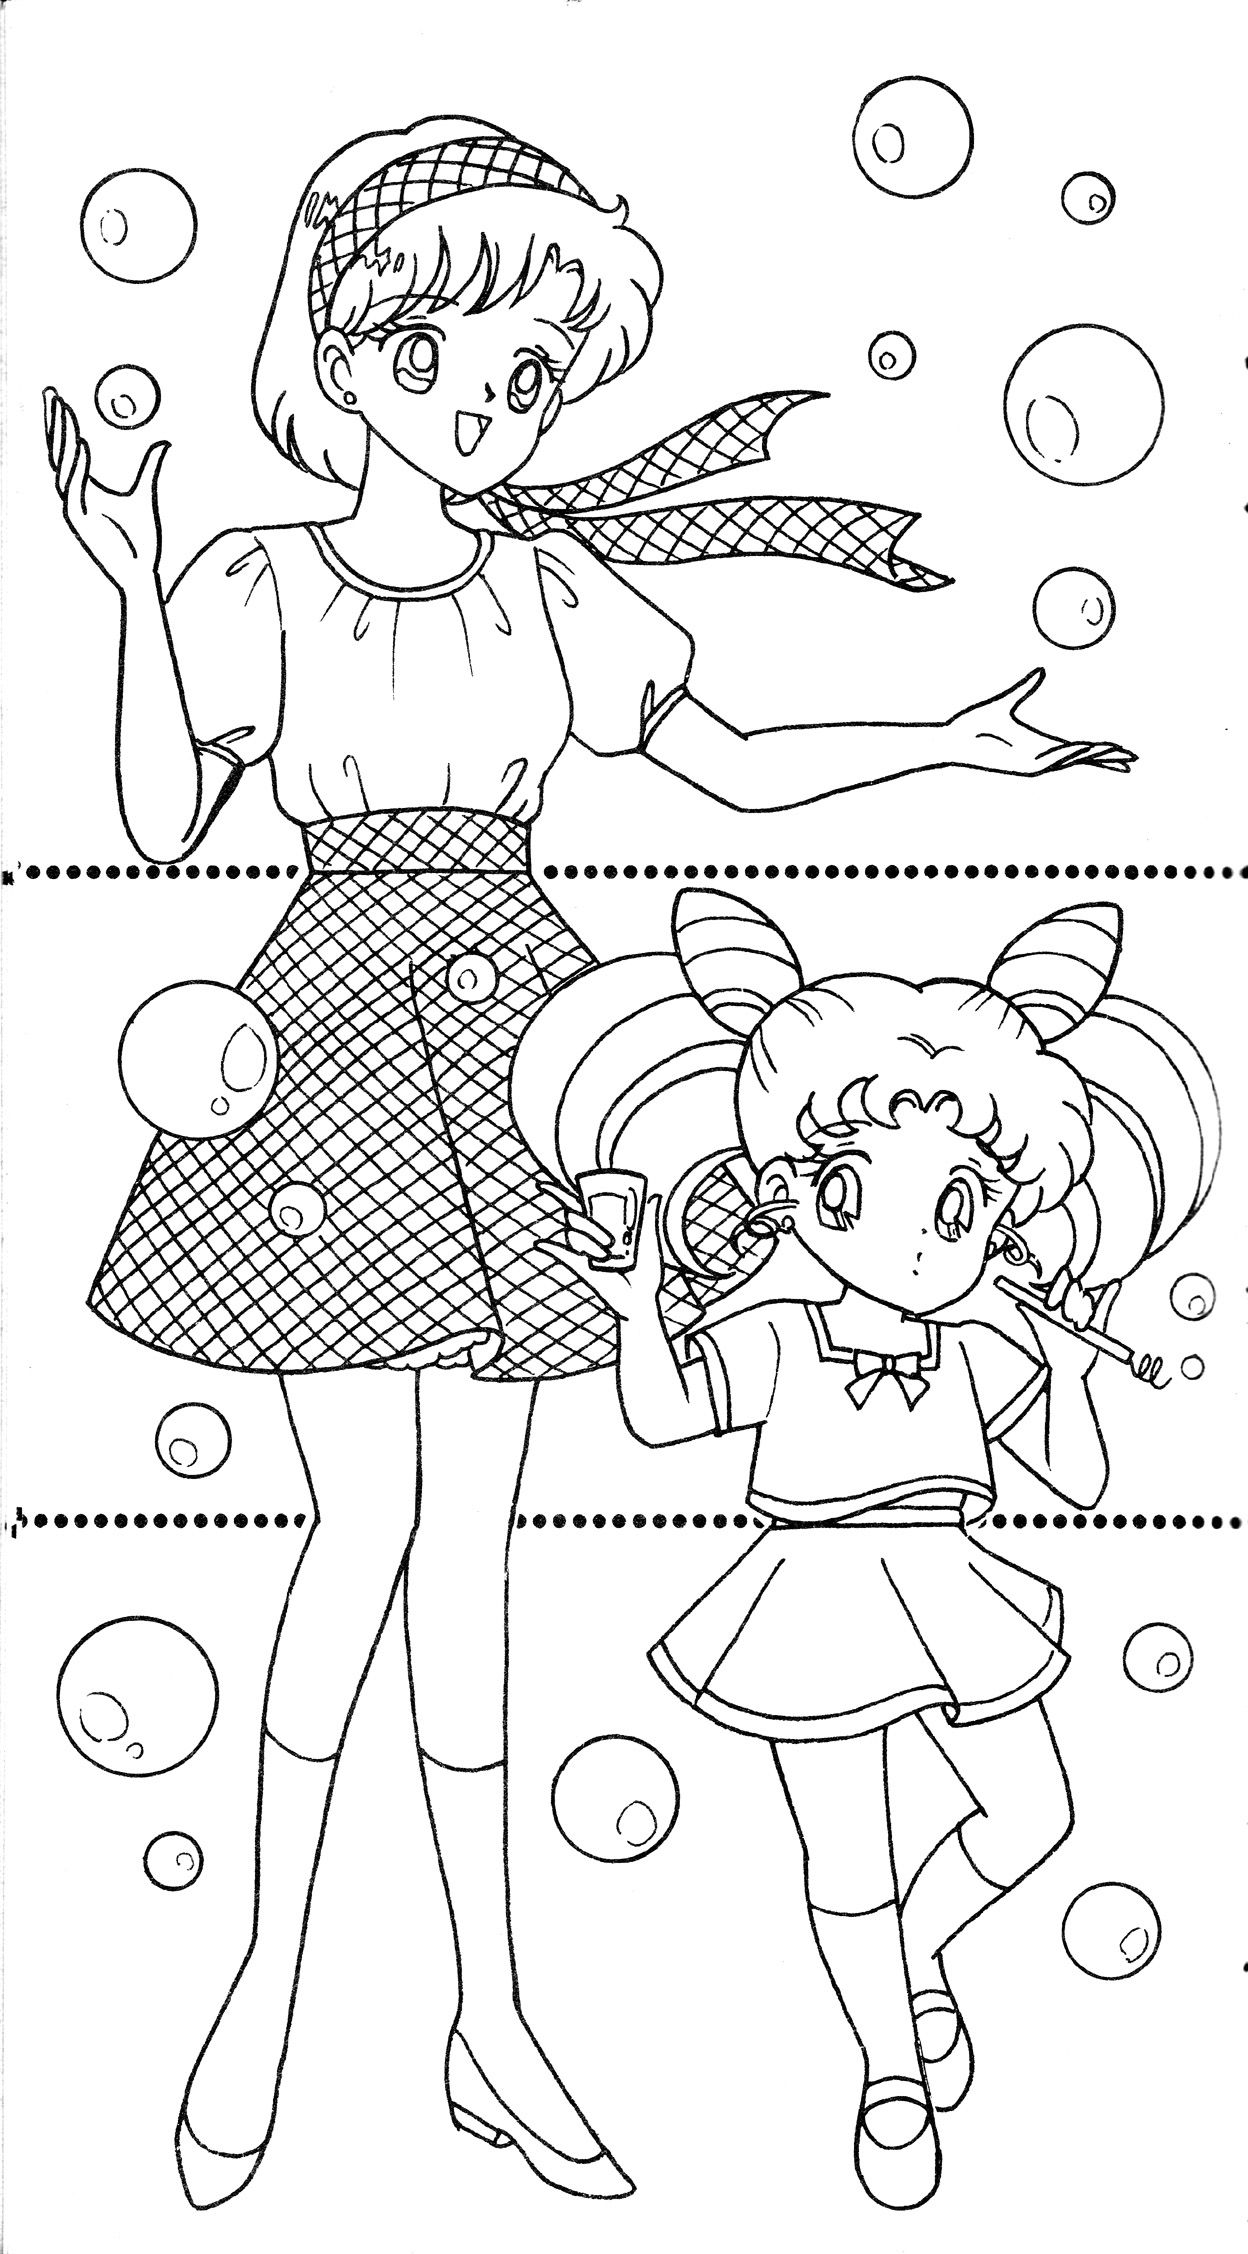 duos089.jpg (1248×2254) | Coloring pages in 2018 | Pinterest ...